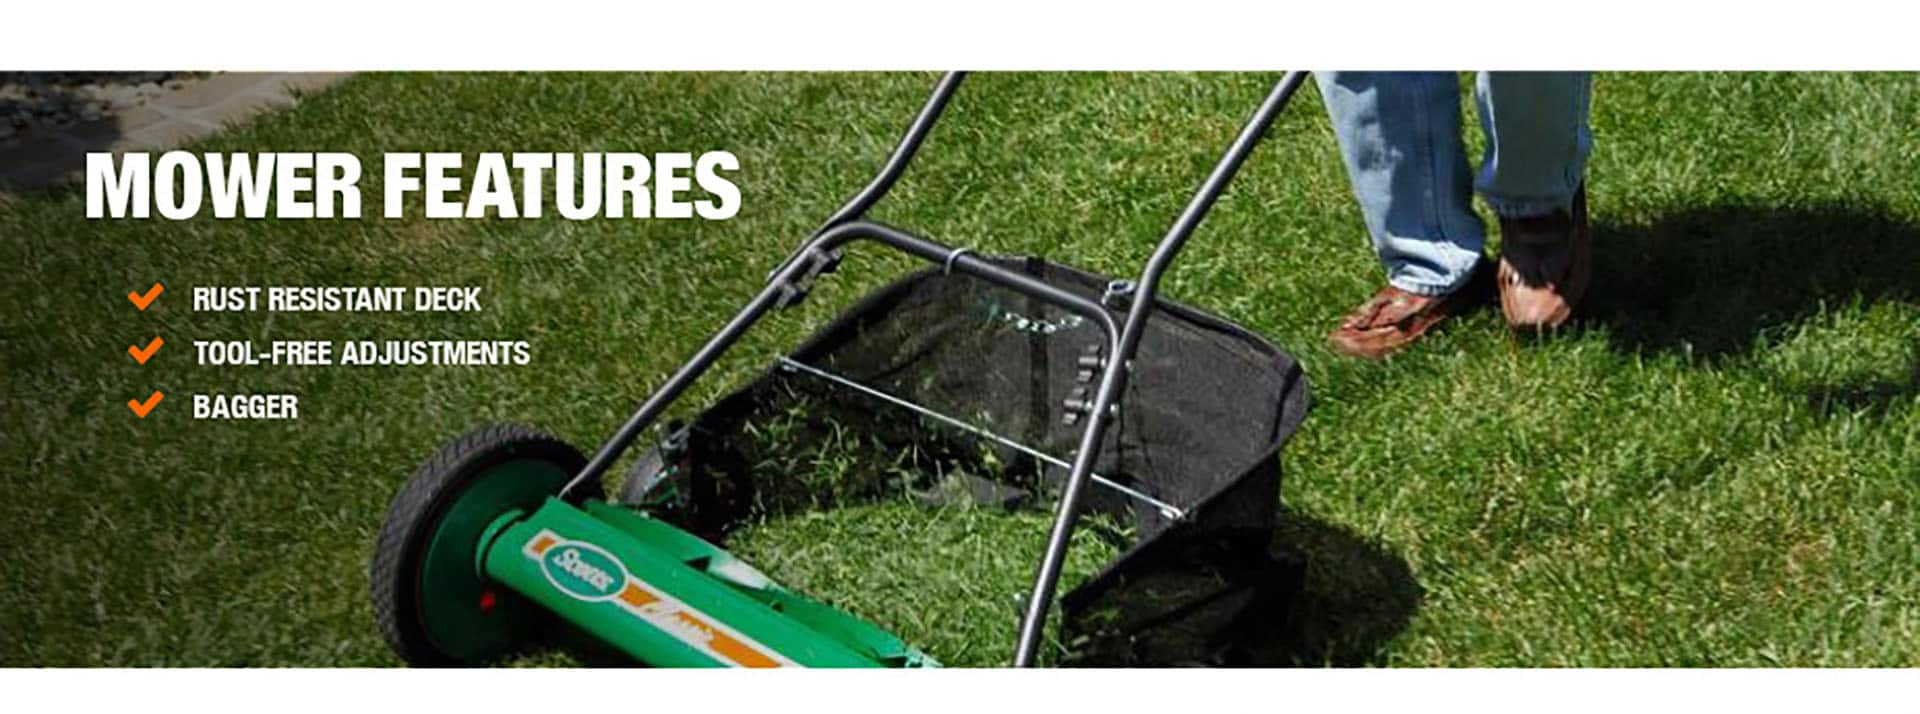 Mower Features